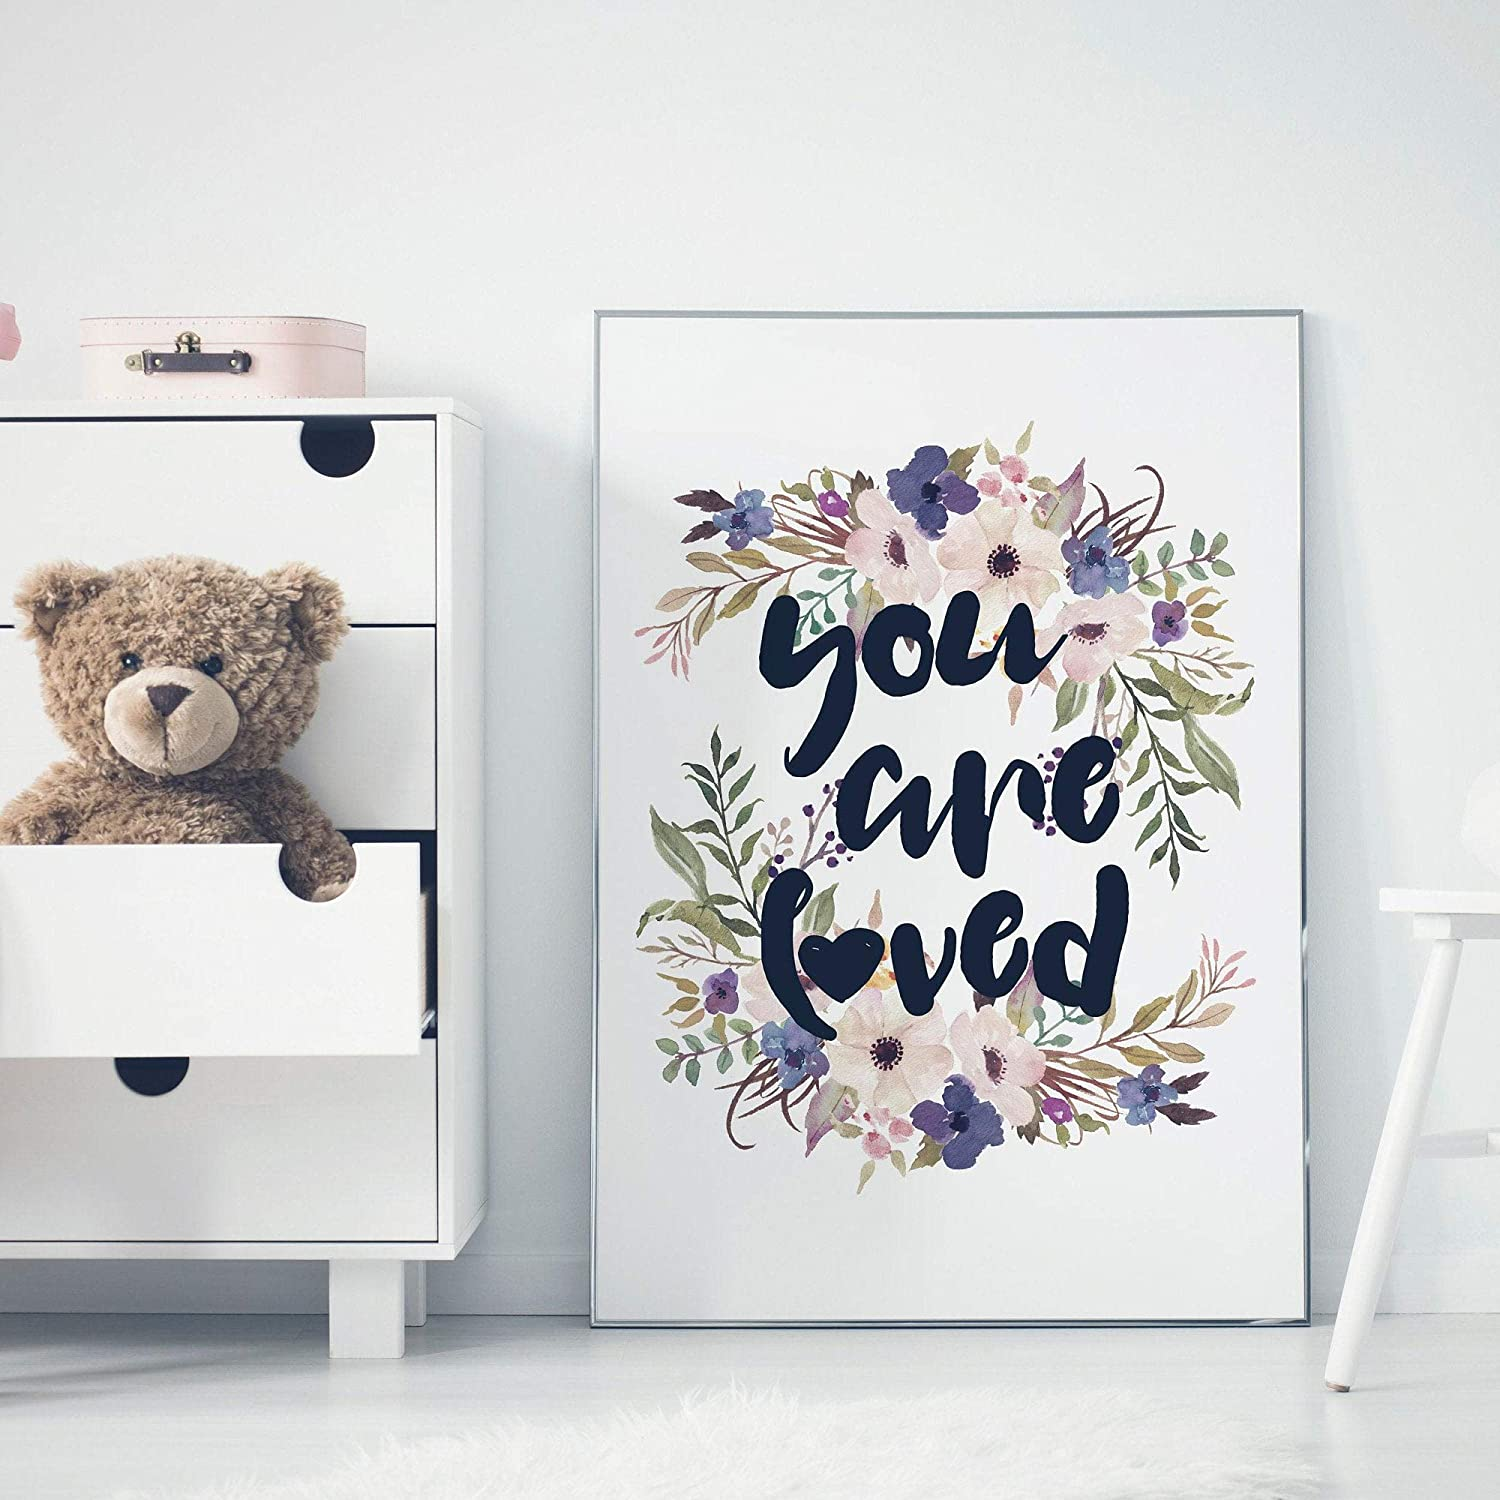 N / A You are Loved Wooden Sign with Floral Watercolor Art Wall Decor Sign for Girls Nursery Room Sign